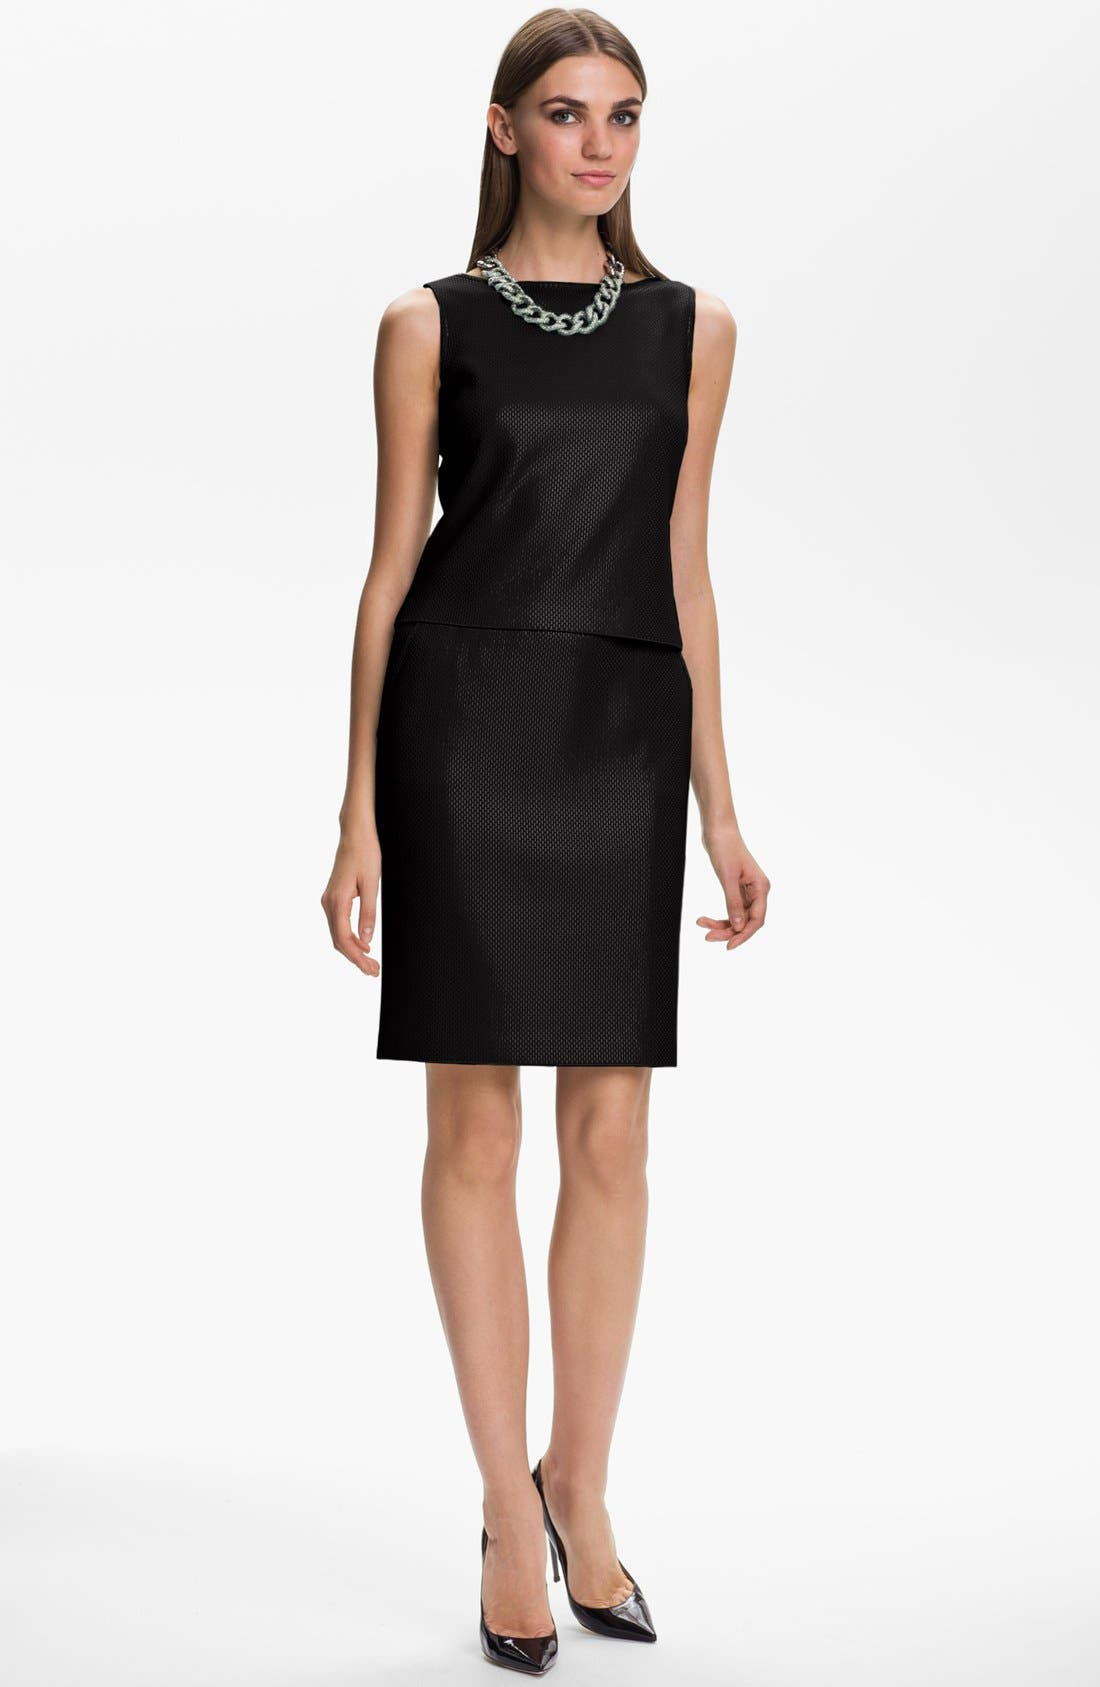 Main Image - St. John Collection Sequin Knit Dress